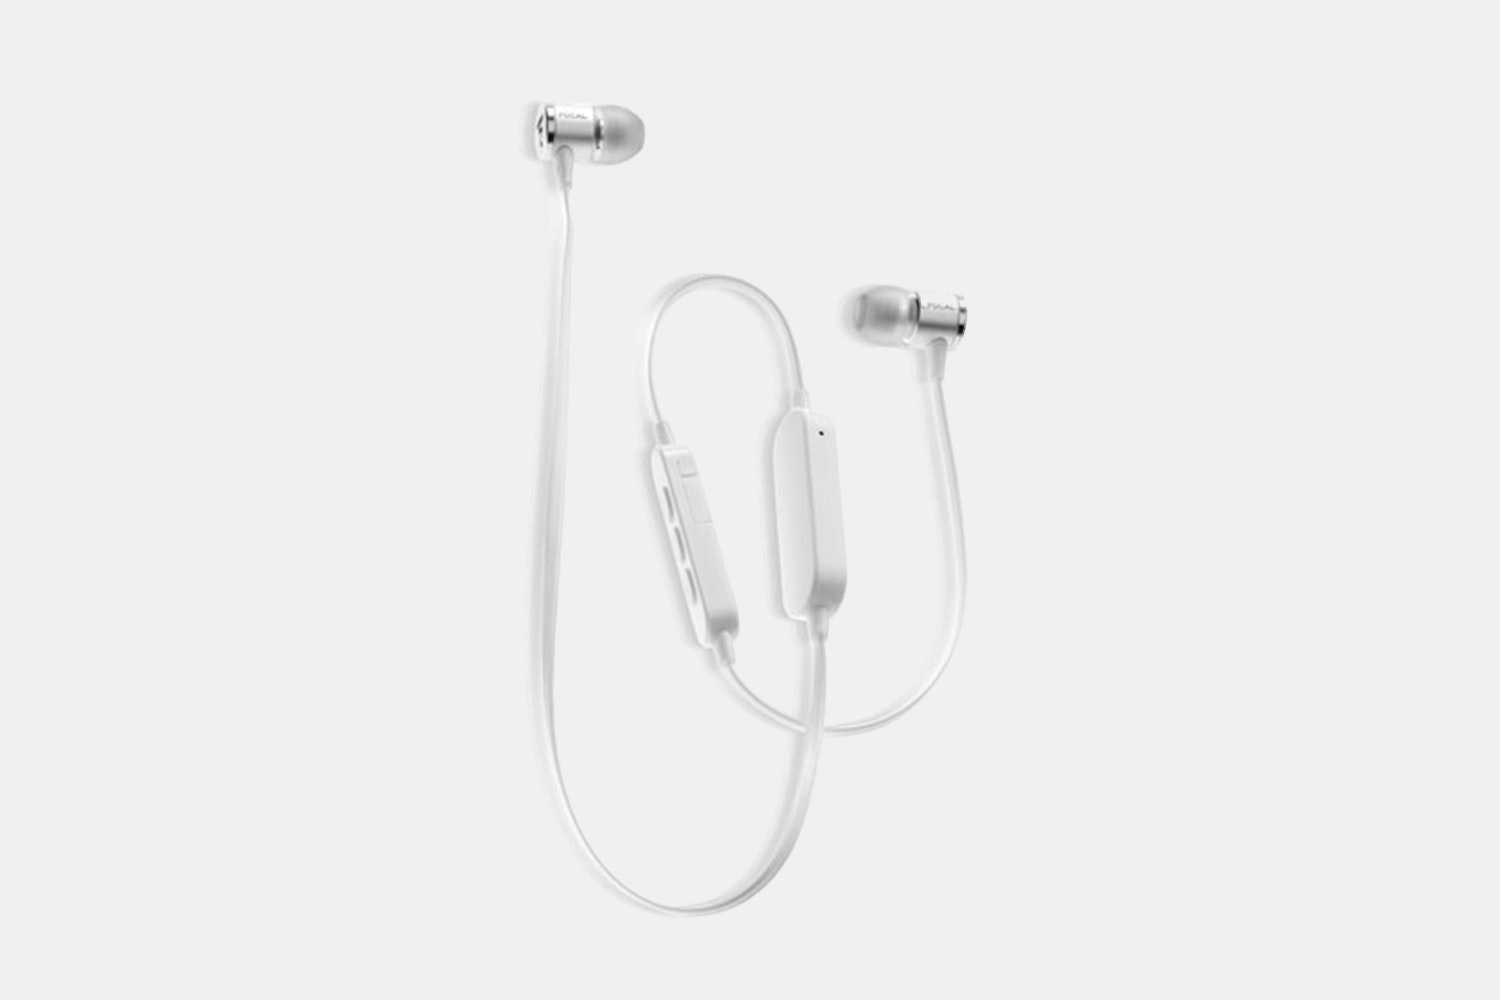 Focal Spark Wireless In-Ear Earphones w/ Mic